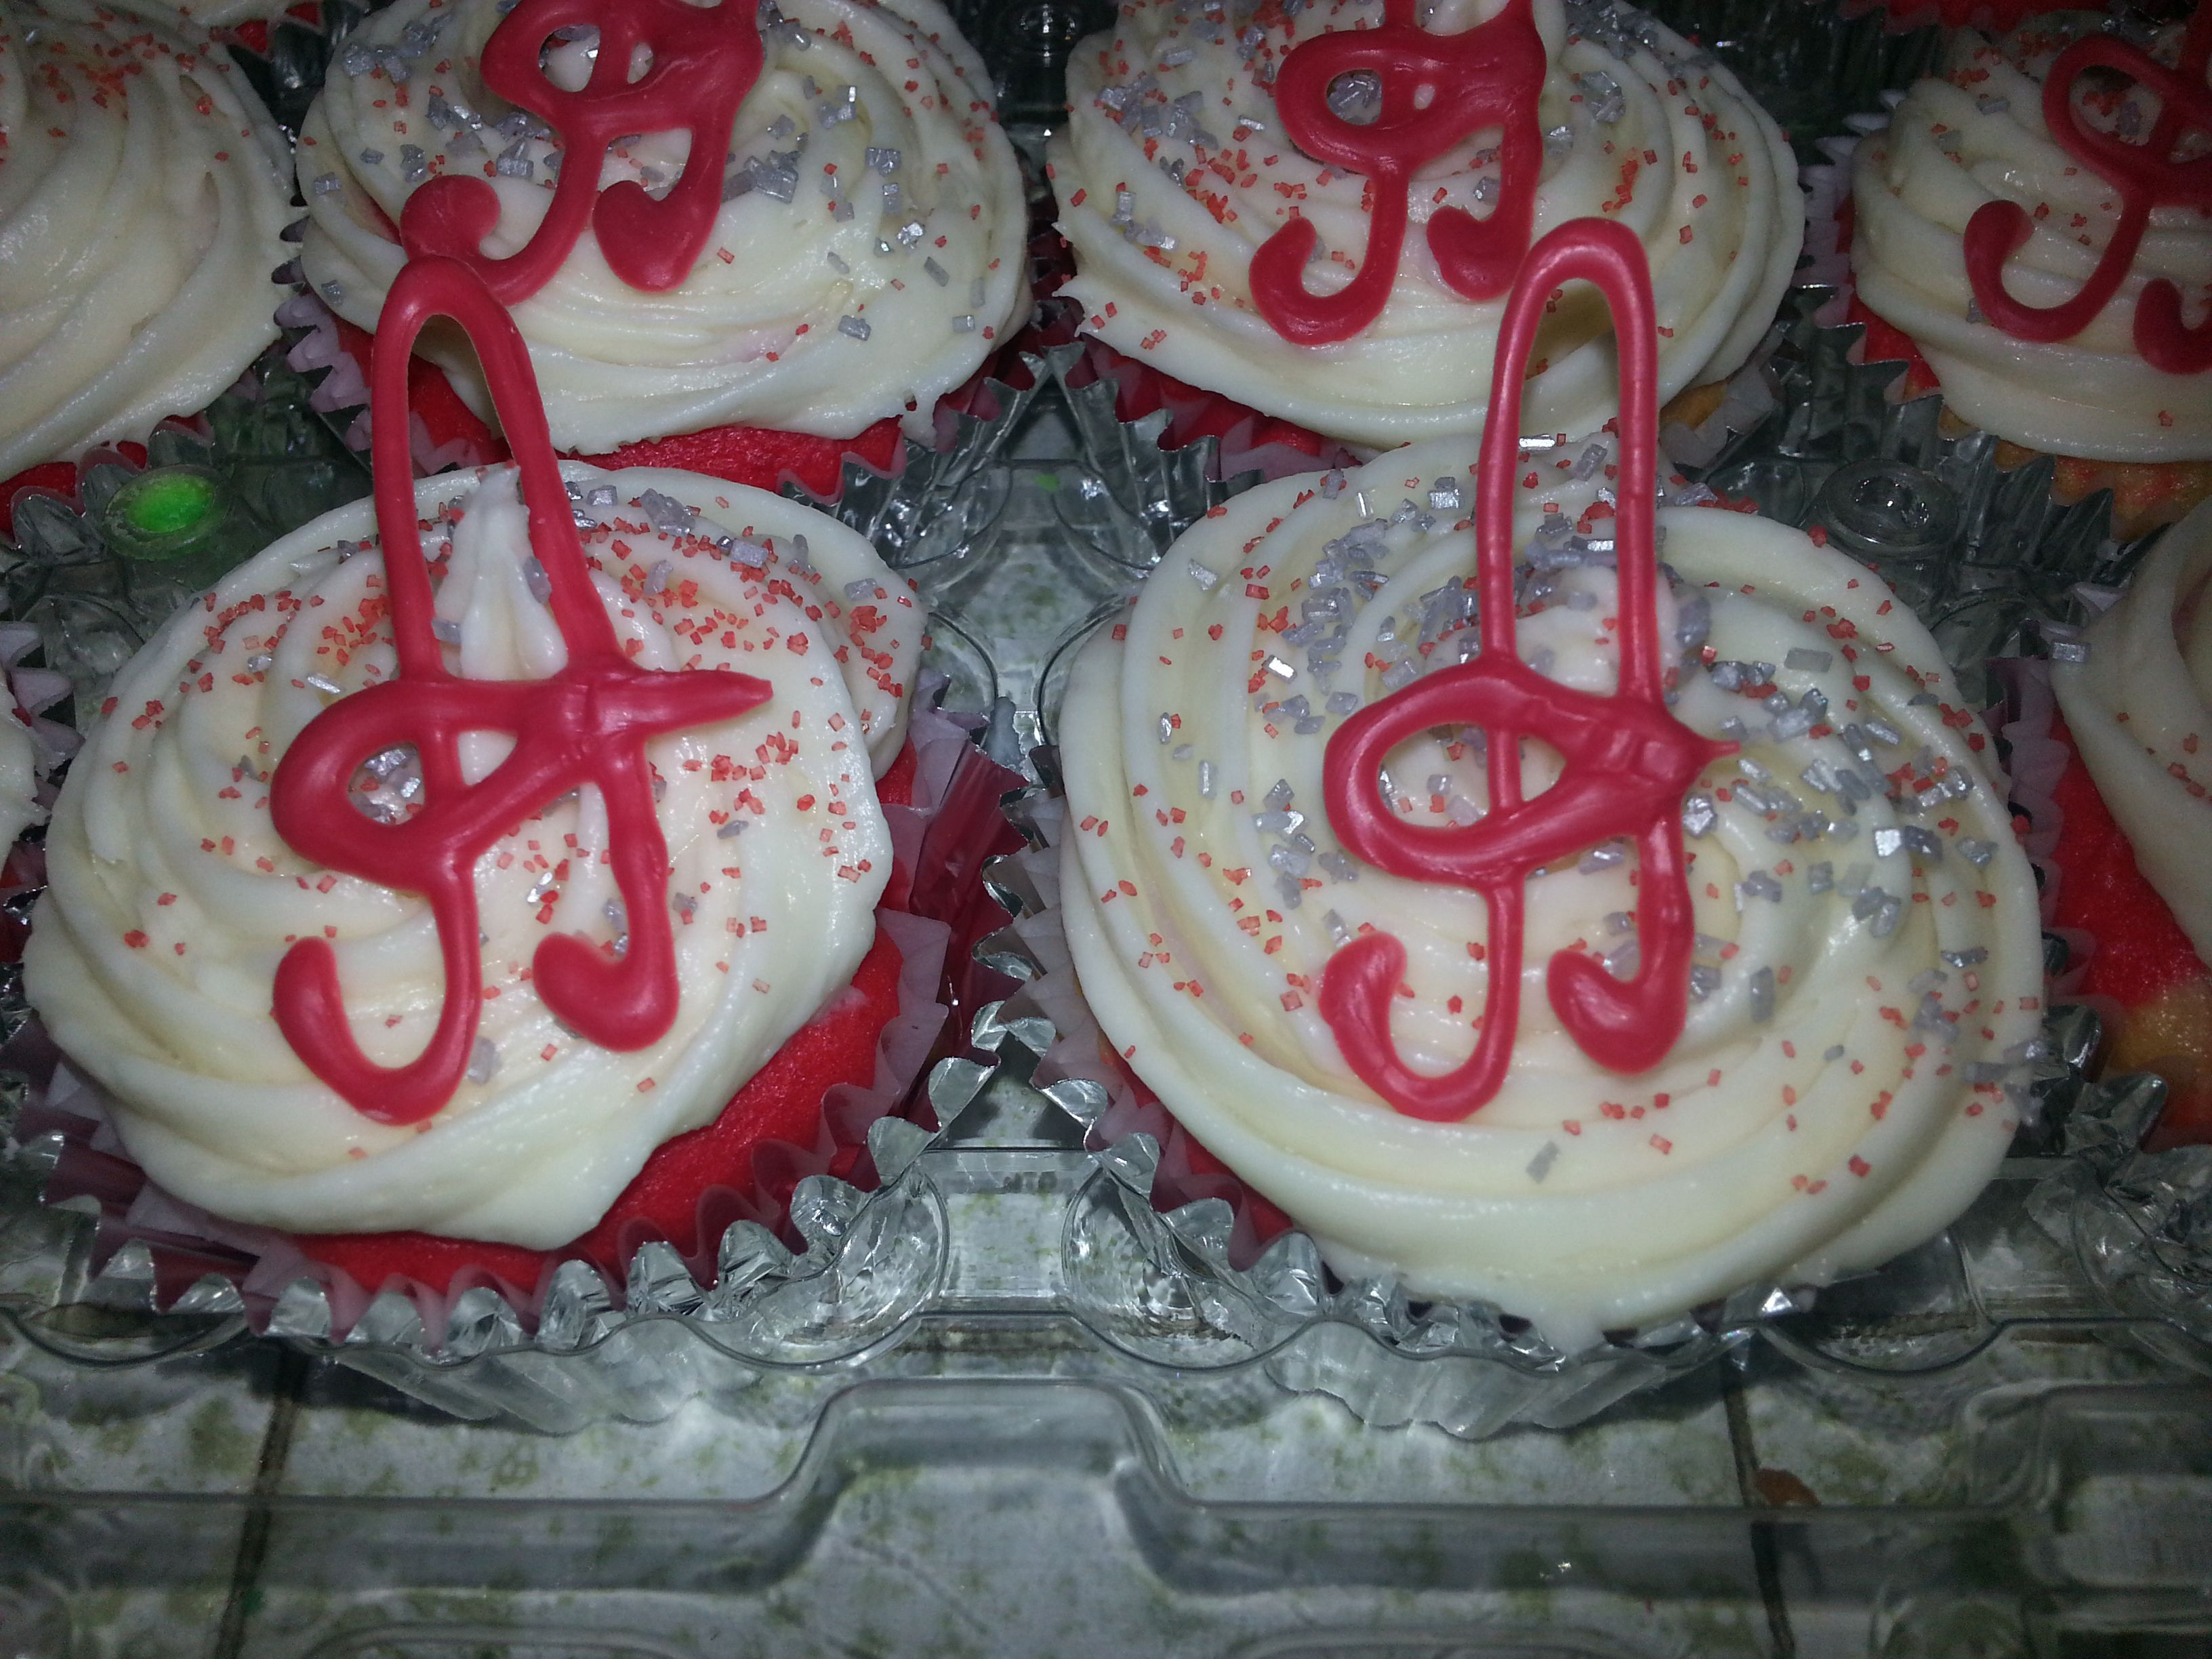 Official Alyse cupcakes